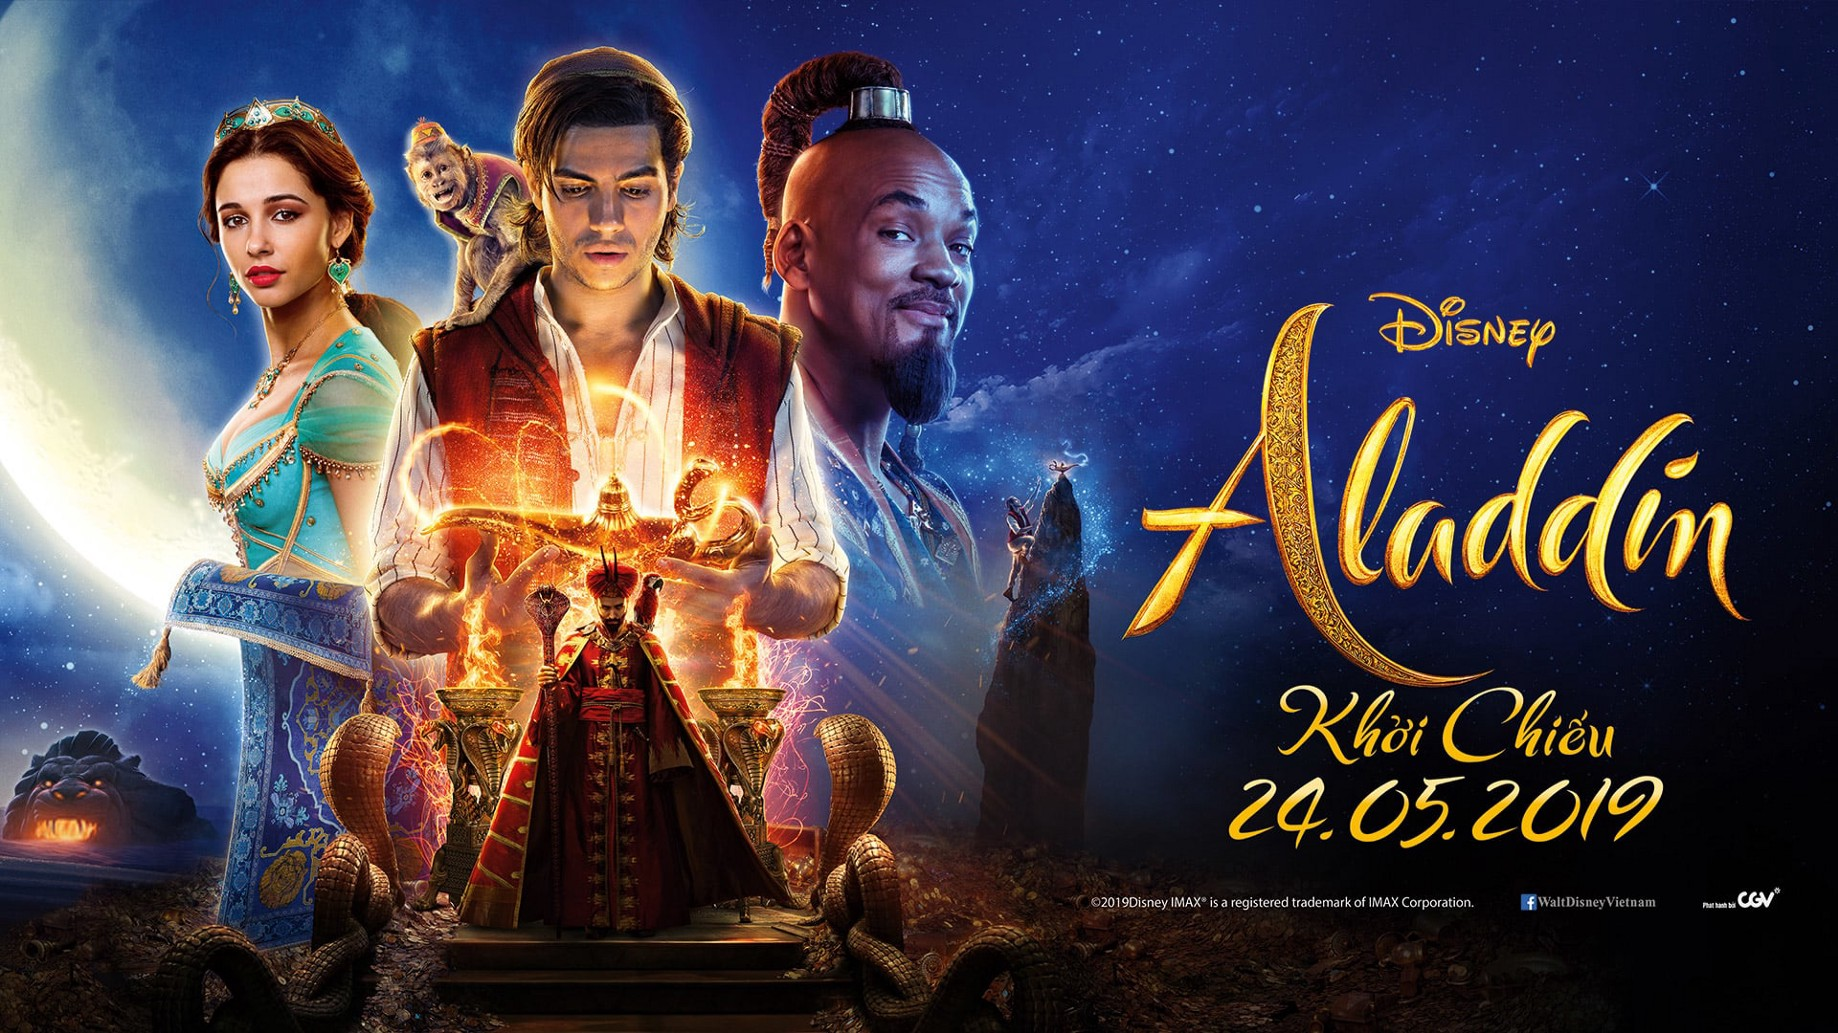 Aladdin (2019) Google Drive || HD Streaming - Ackermann Otto - Medium